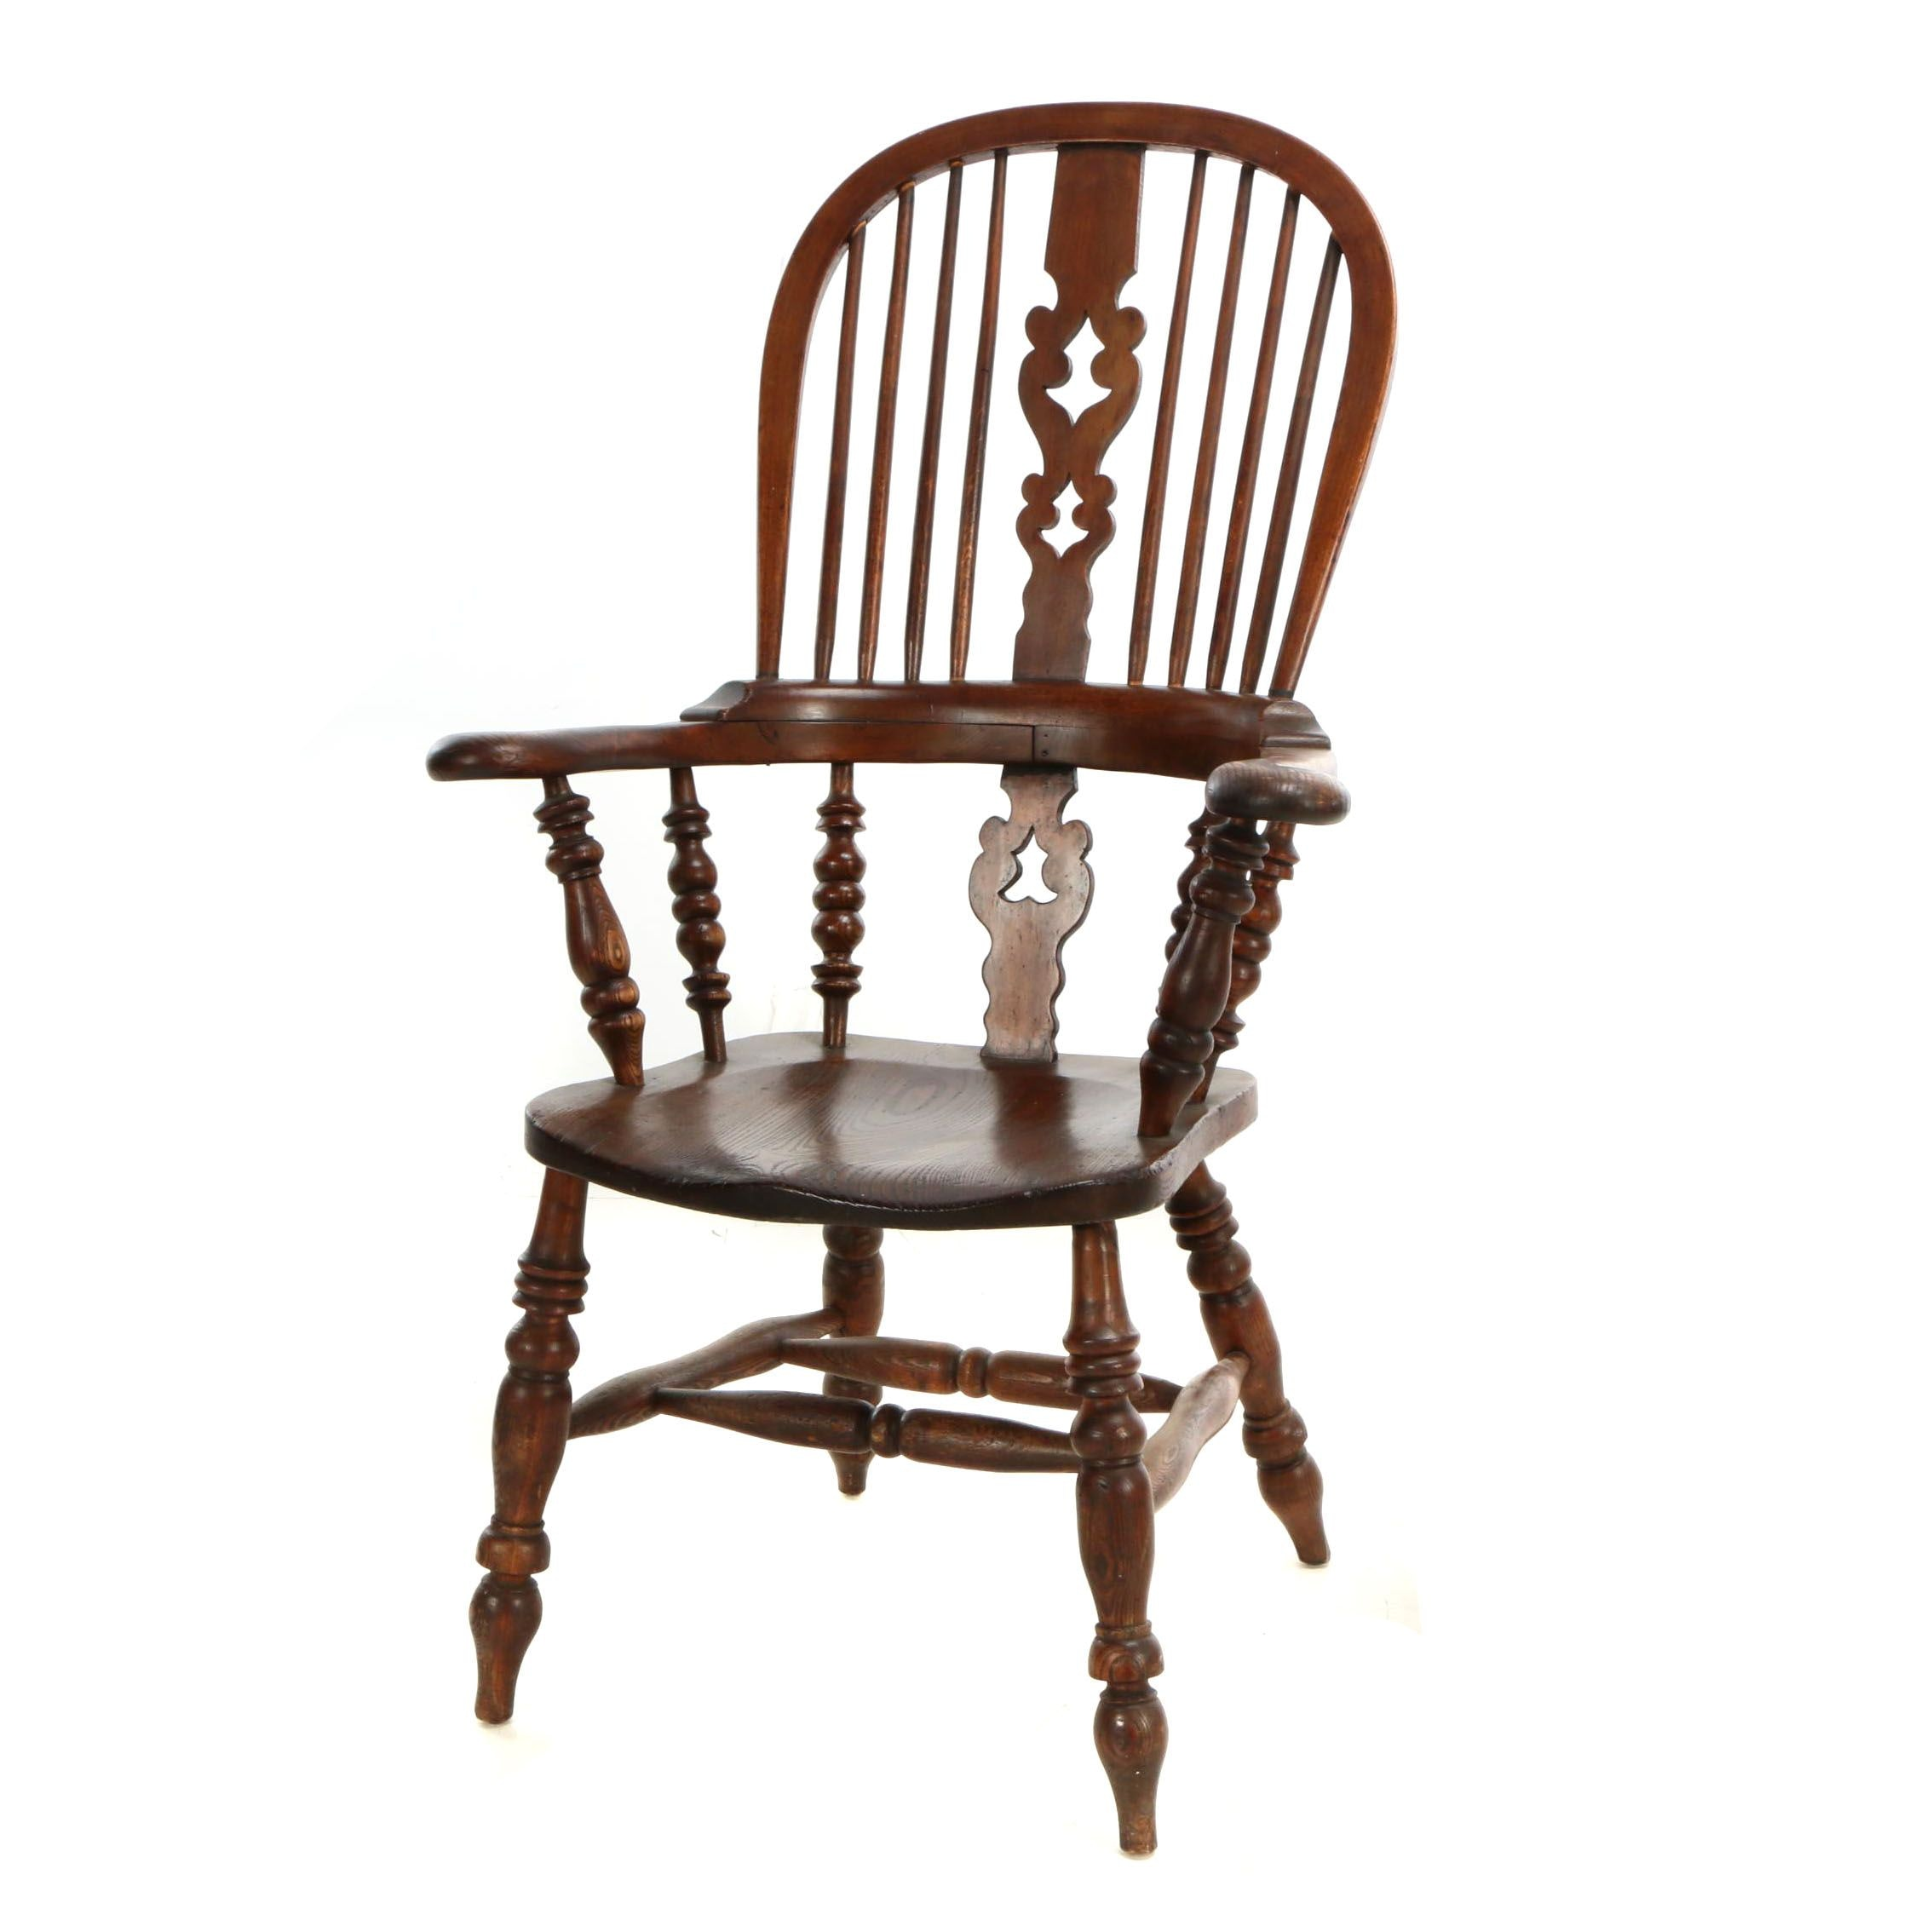 English Elm and Beech Windsor Armchair by W.F. Co. Ltd., Early 20th Century